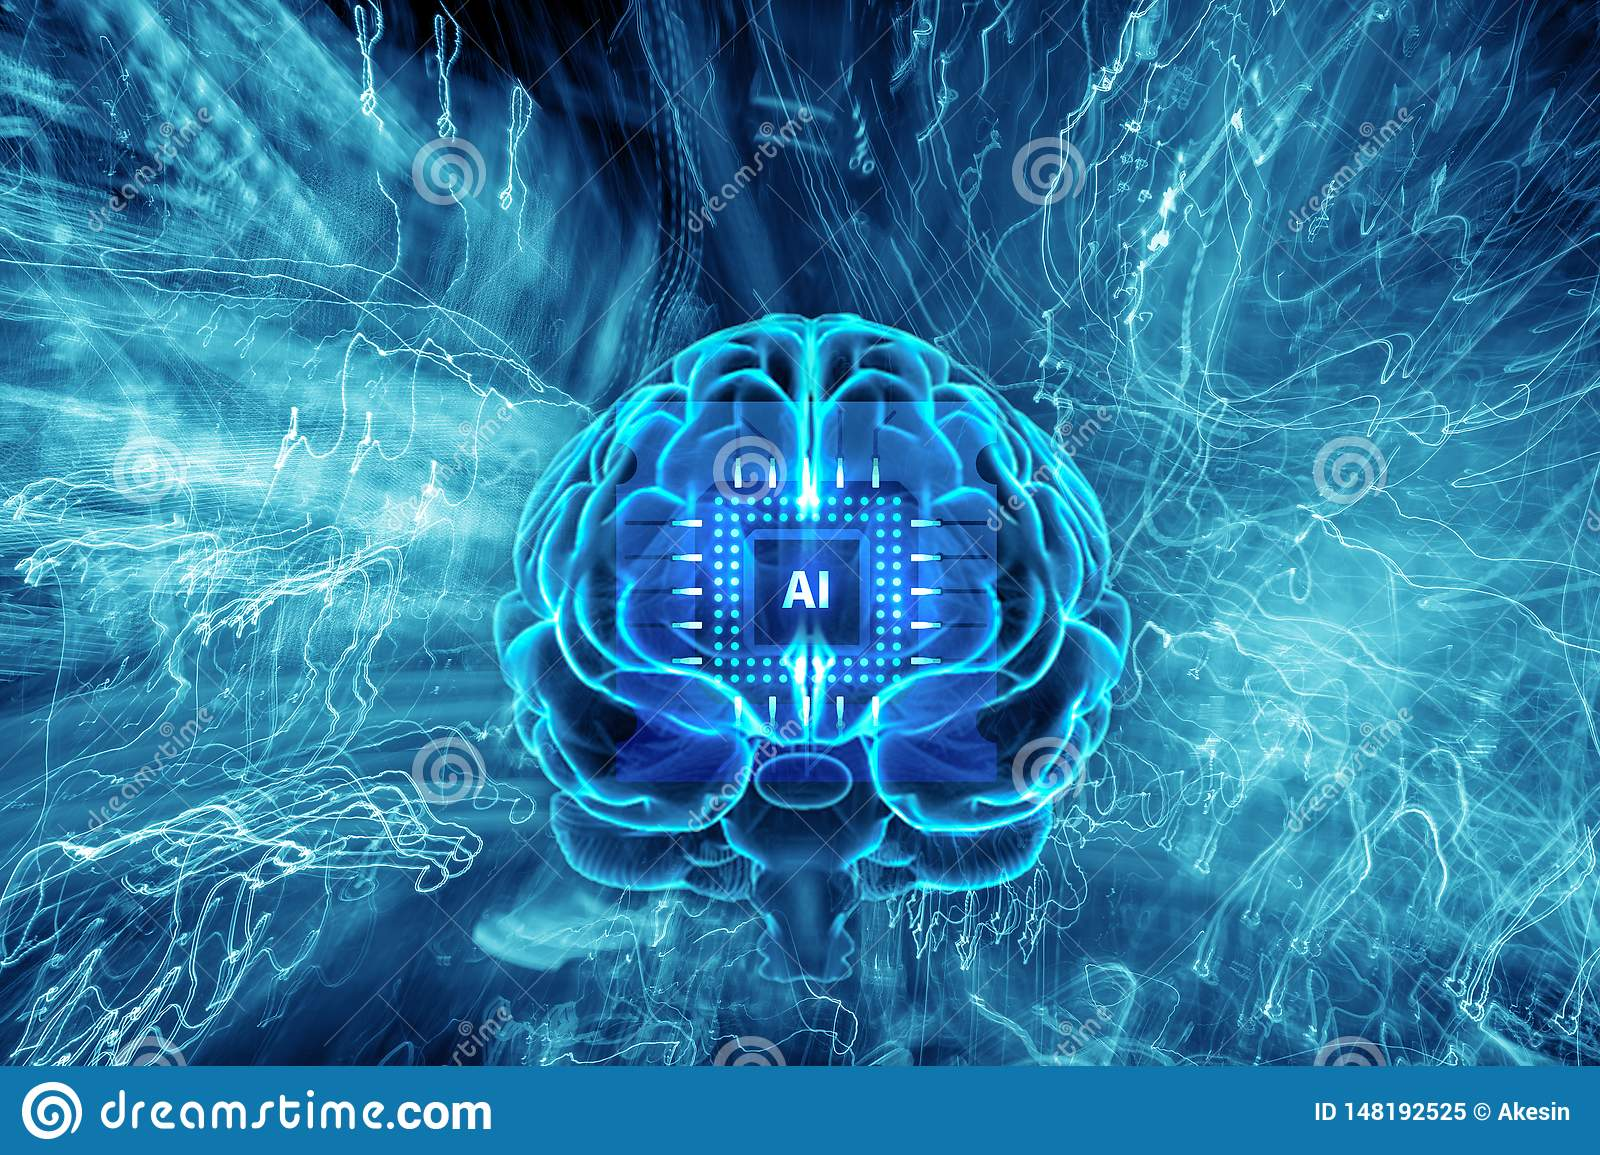 Background Of Artificial Intelligence  Human Brain With AI Computer